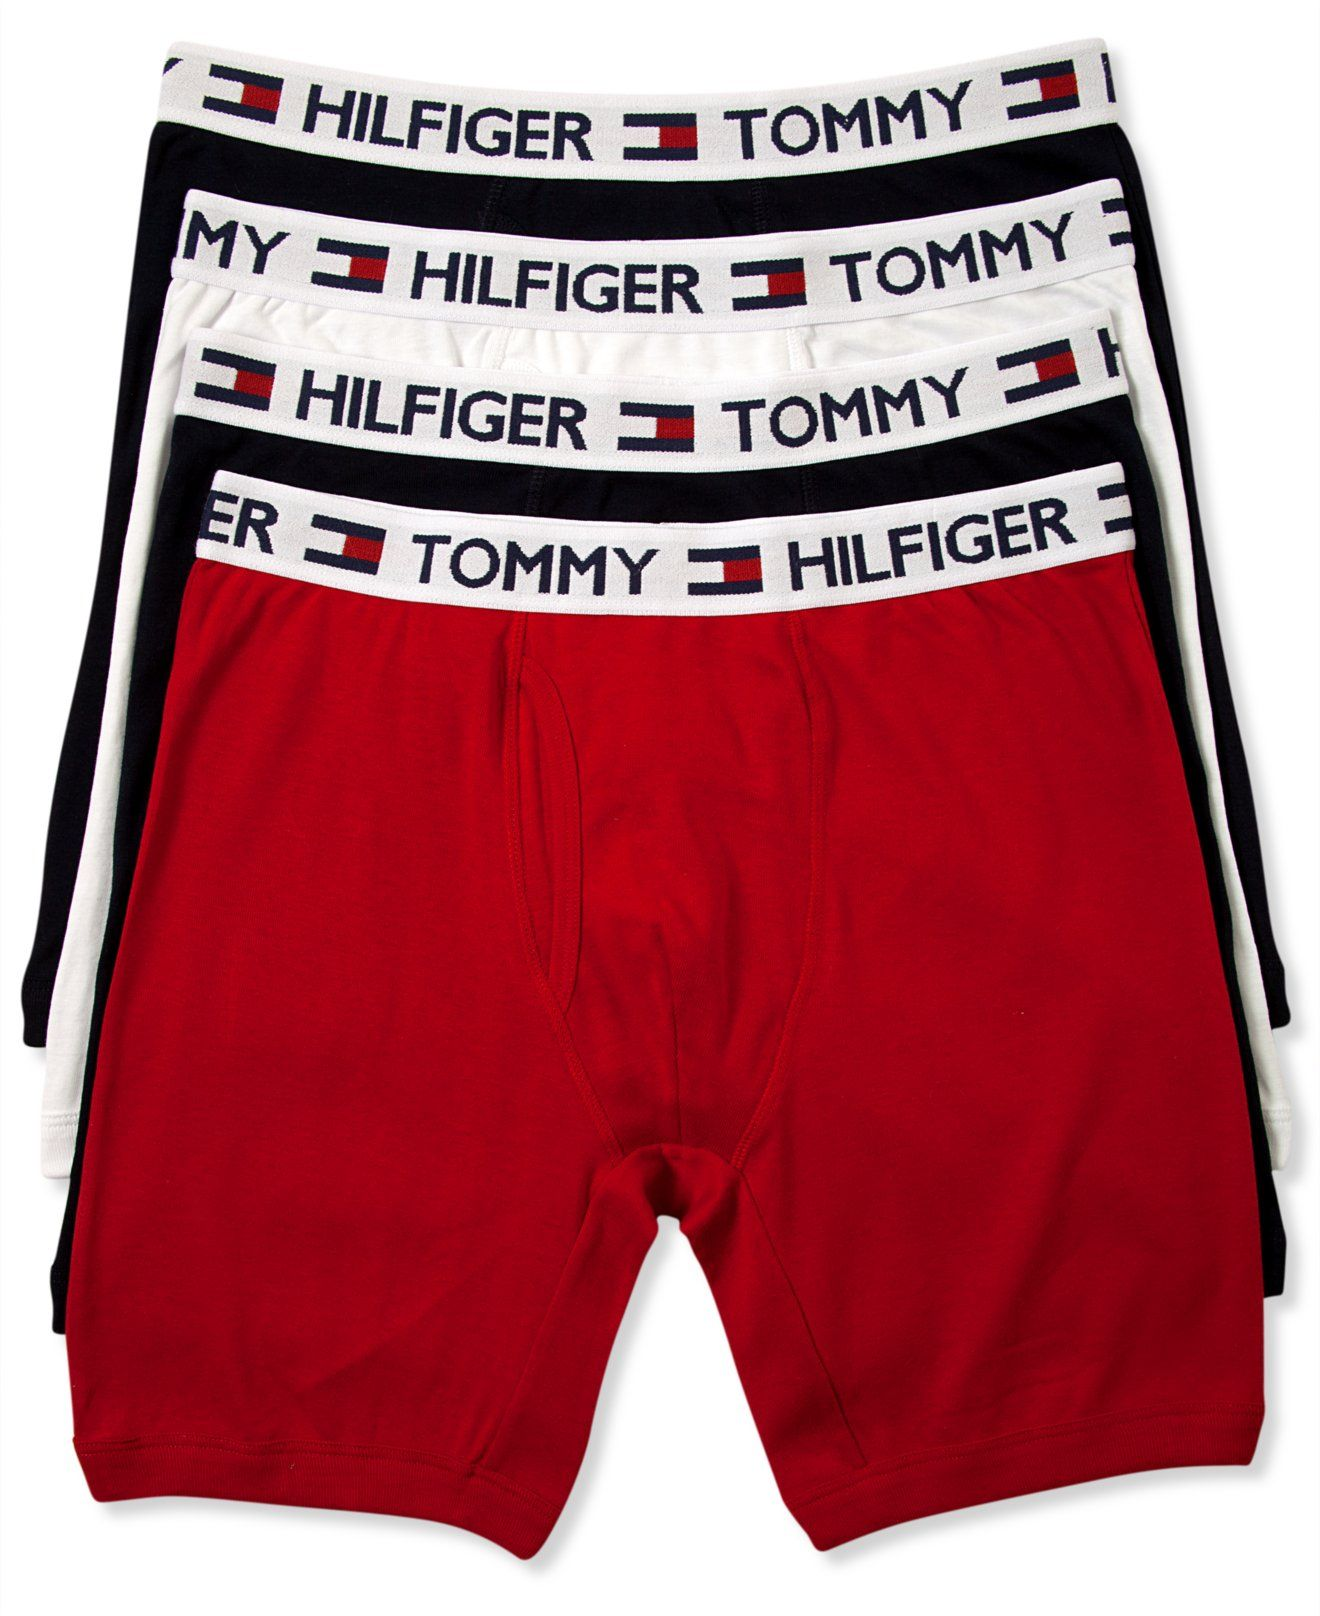 210bbdc9716f Tommy Hilfiger Men's Underwear, Athletic Boxer Brief 4-Pack - Underwear -  Men - Macy's 32.00